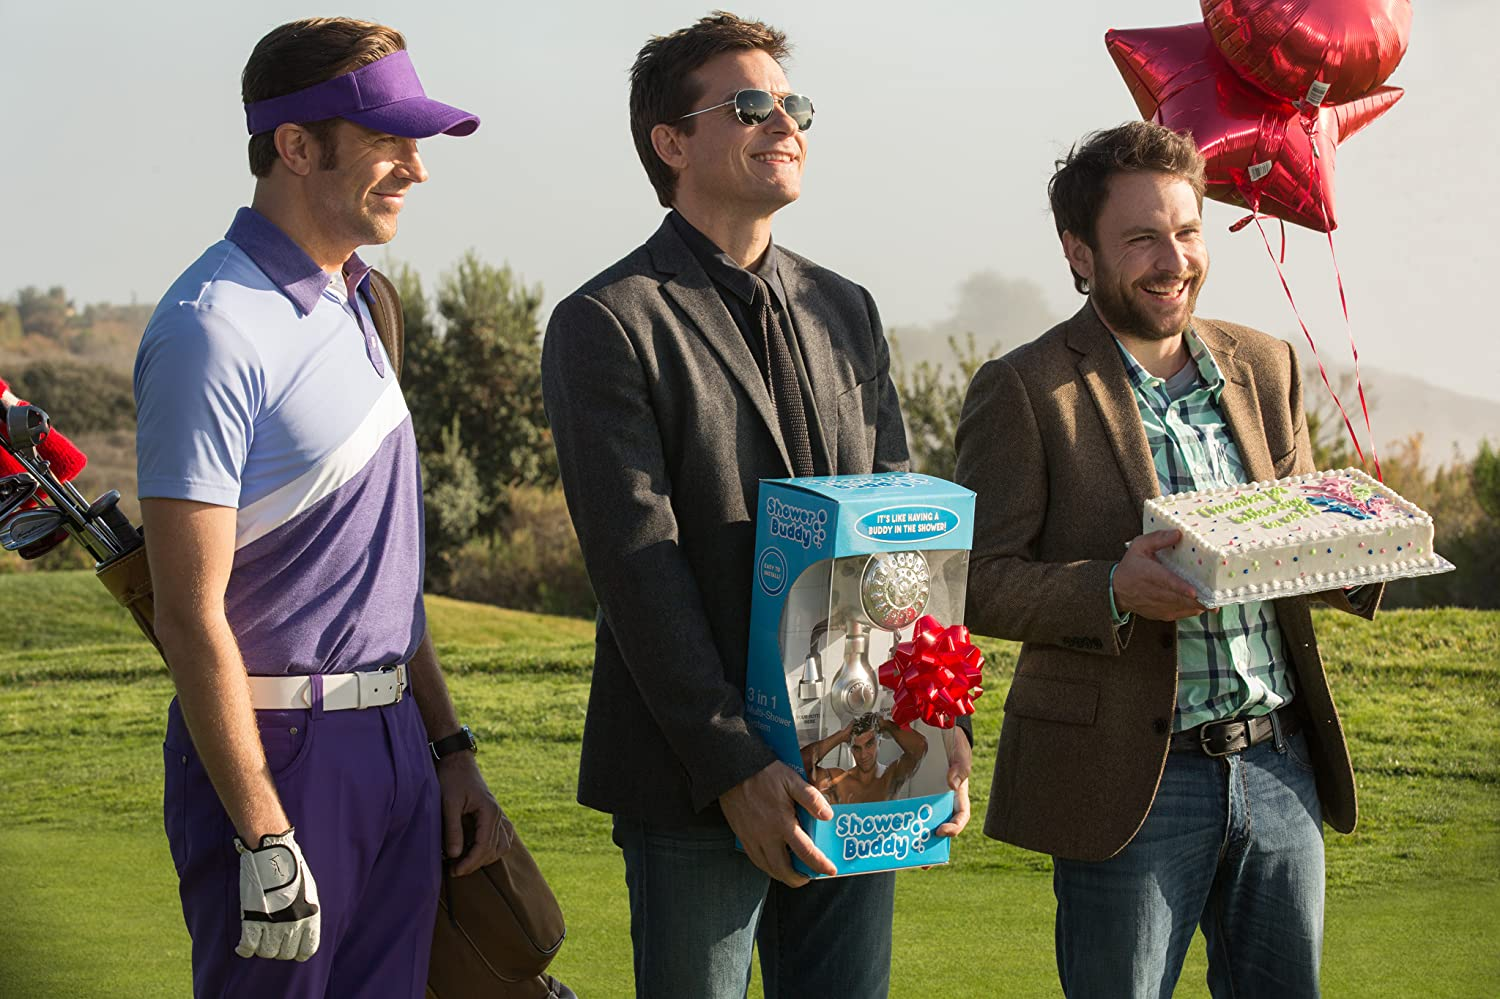 Jason Bateman, Charlie Day, Jason Sudeikis, and Chris Pine in Horrible Bosses 2 (2014)